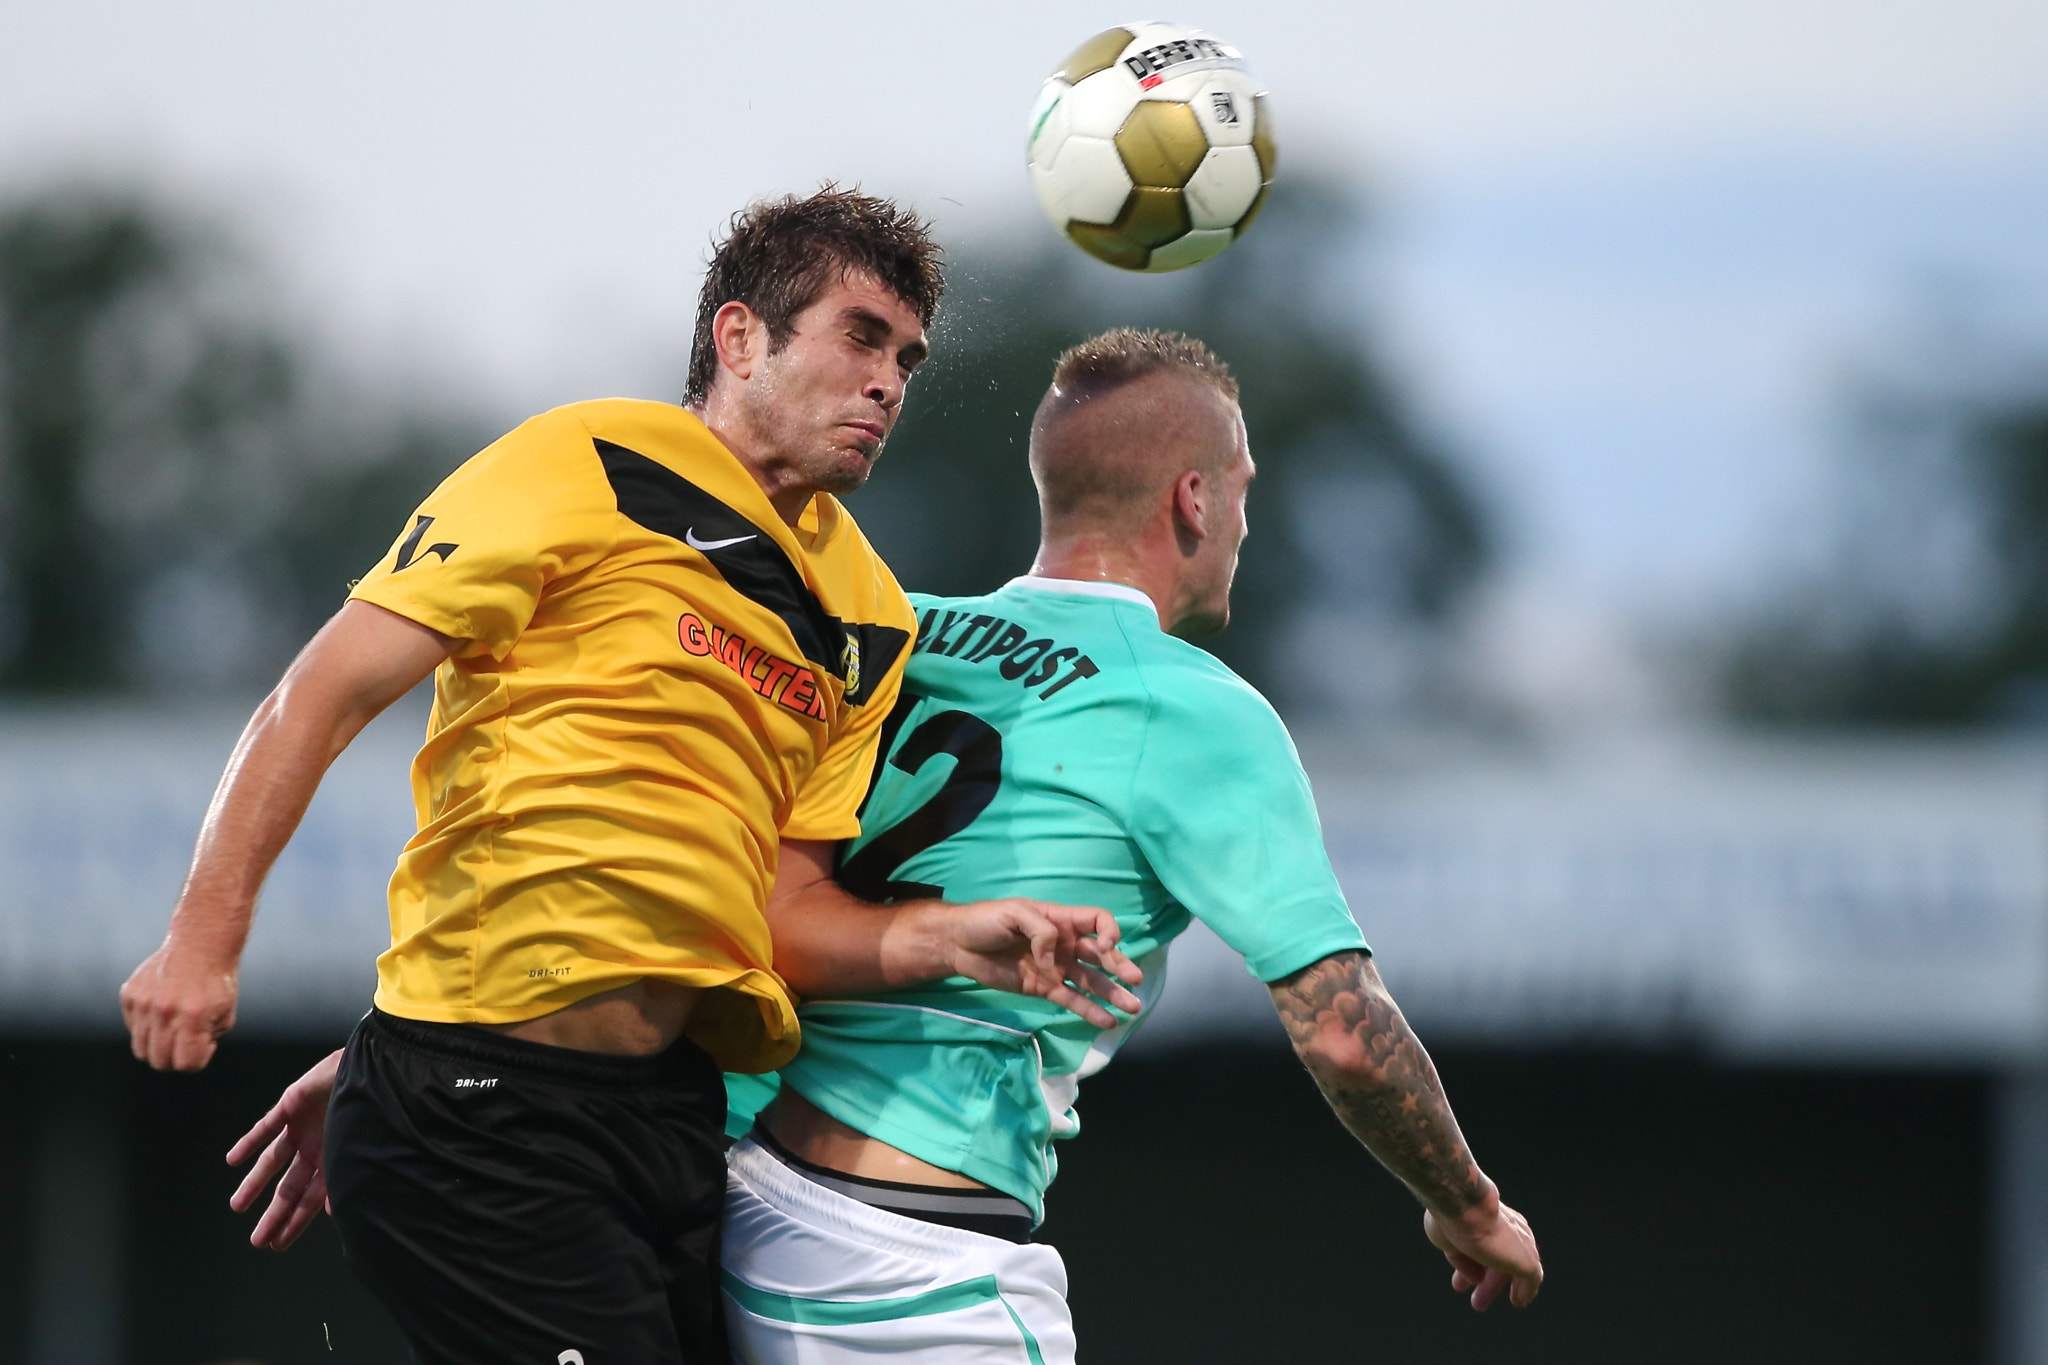 Photograph FC Dordrecht - SC Veendam by Kay in 't Veen on 500px